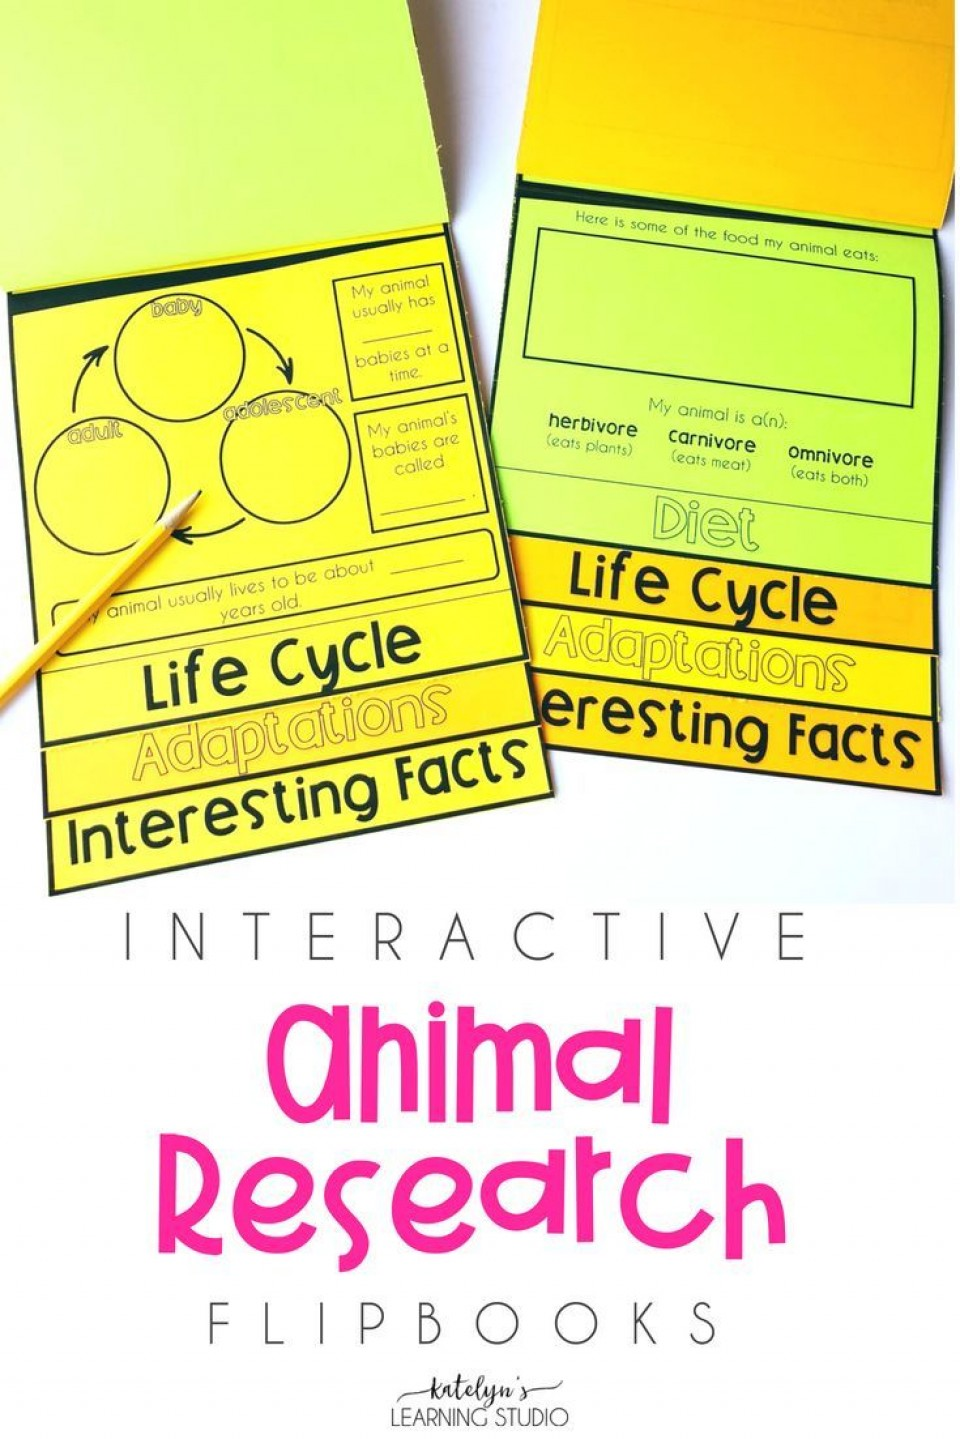 012 Research Paper Animal Awful Ideas Project College Behaviour 960